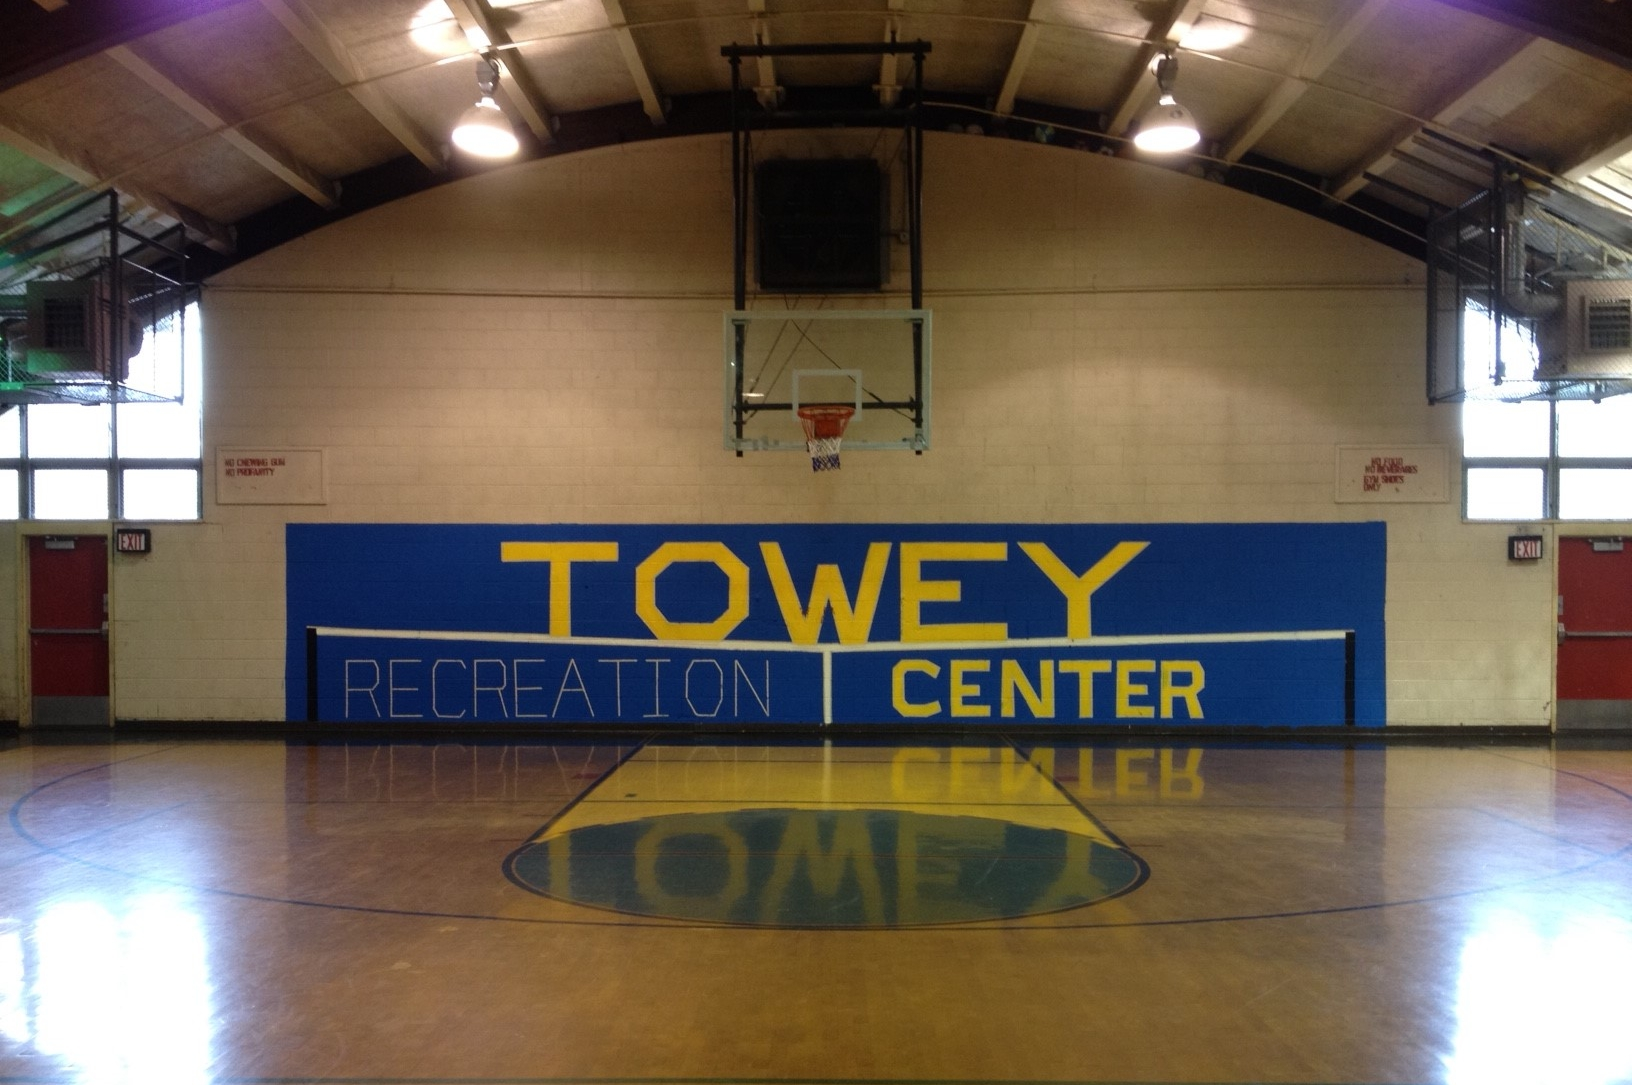 From   Towey Recreation Center